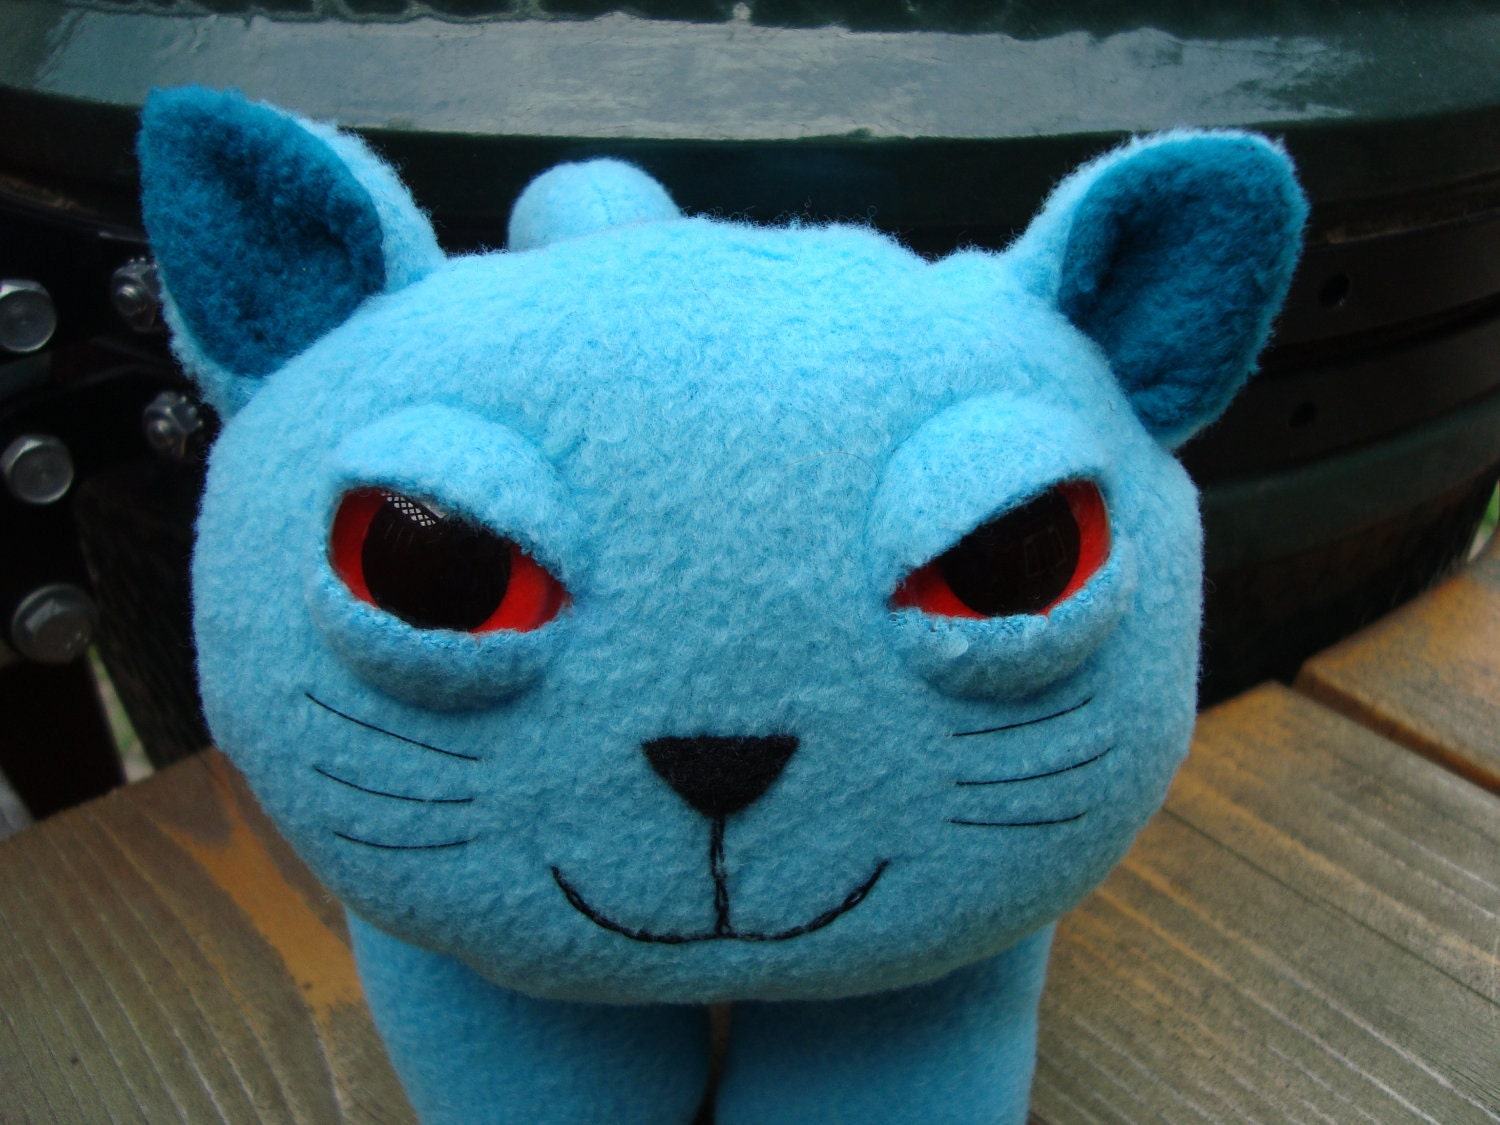 Stuffed animal plush kitty cat red eyes and aqua fleece - Buttons